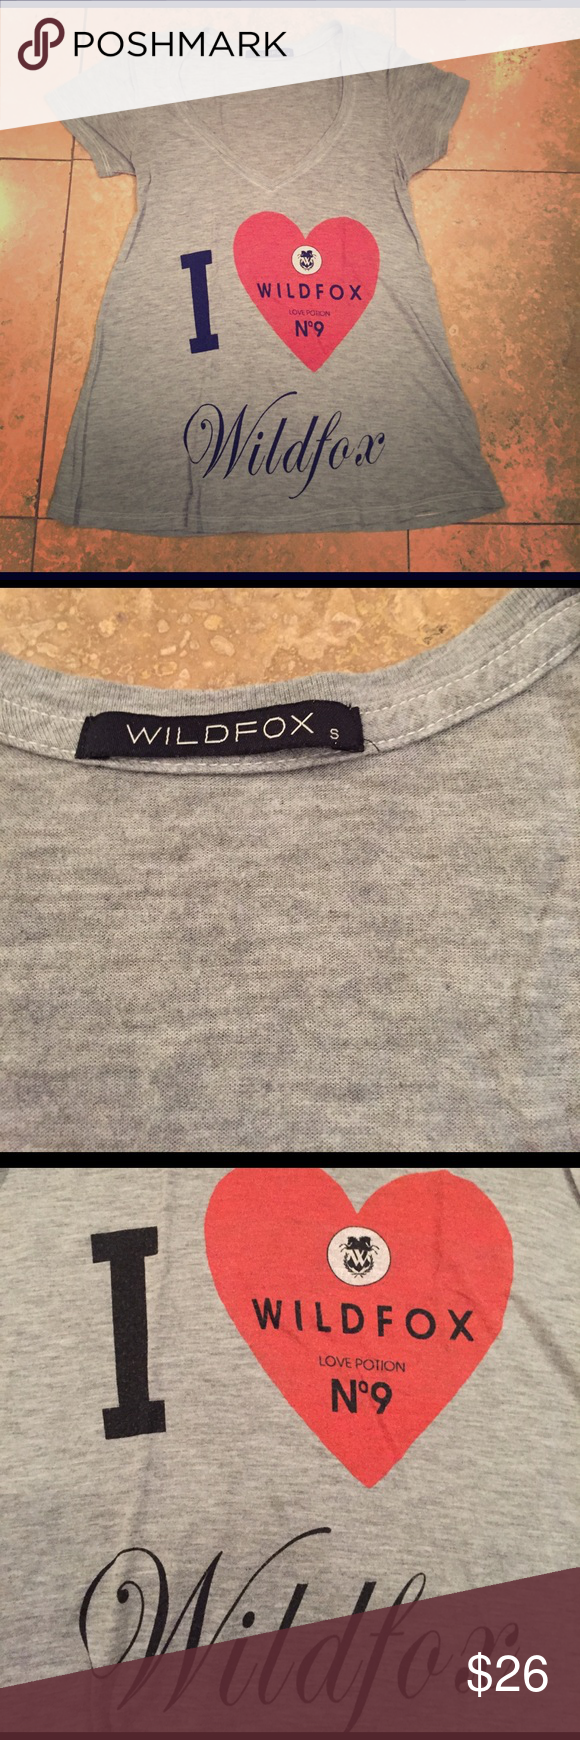 Pre 2009 Wildfox soft t-shirt Excellent preowned condition. Wildfox Tops Tees - Short Sleeve